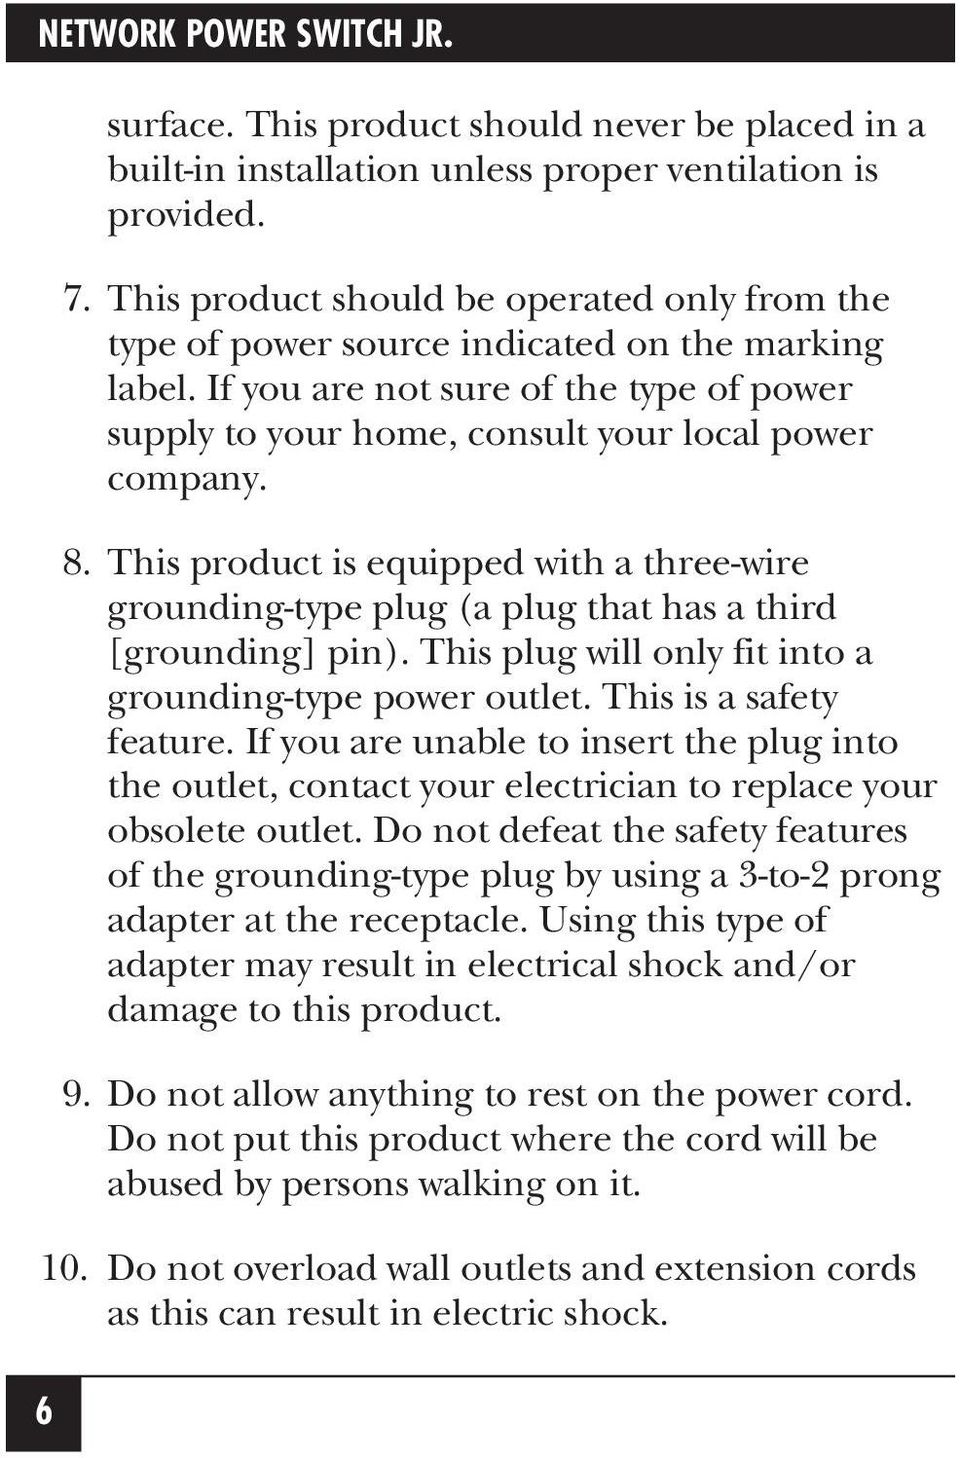 This product is equipped with a three-wire grounding-type plug (a plug that has a third [grounding] pin). This plug will only fit into a grounding-type power outlet. This is a safety feature.